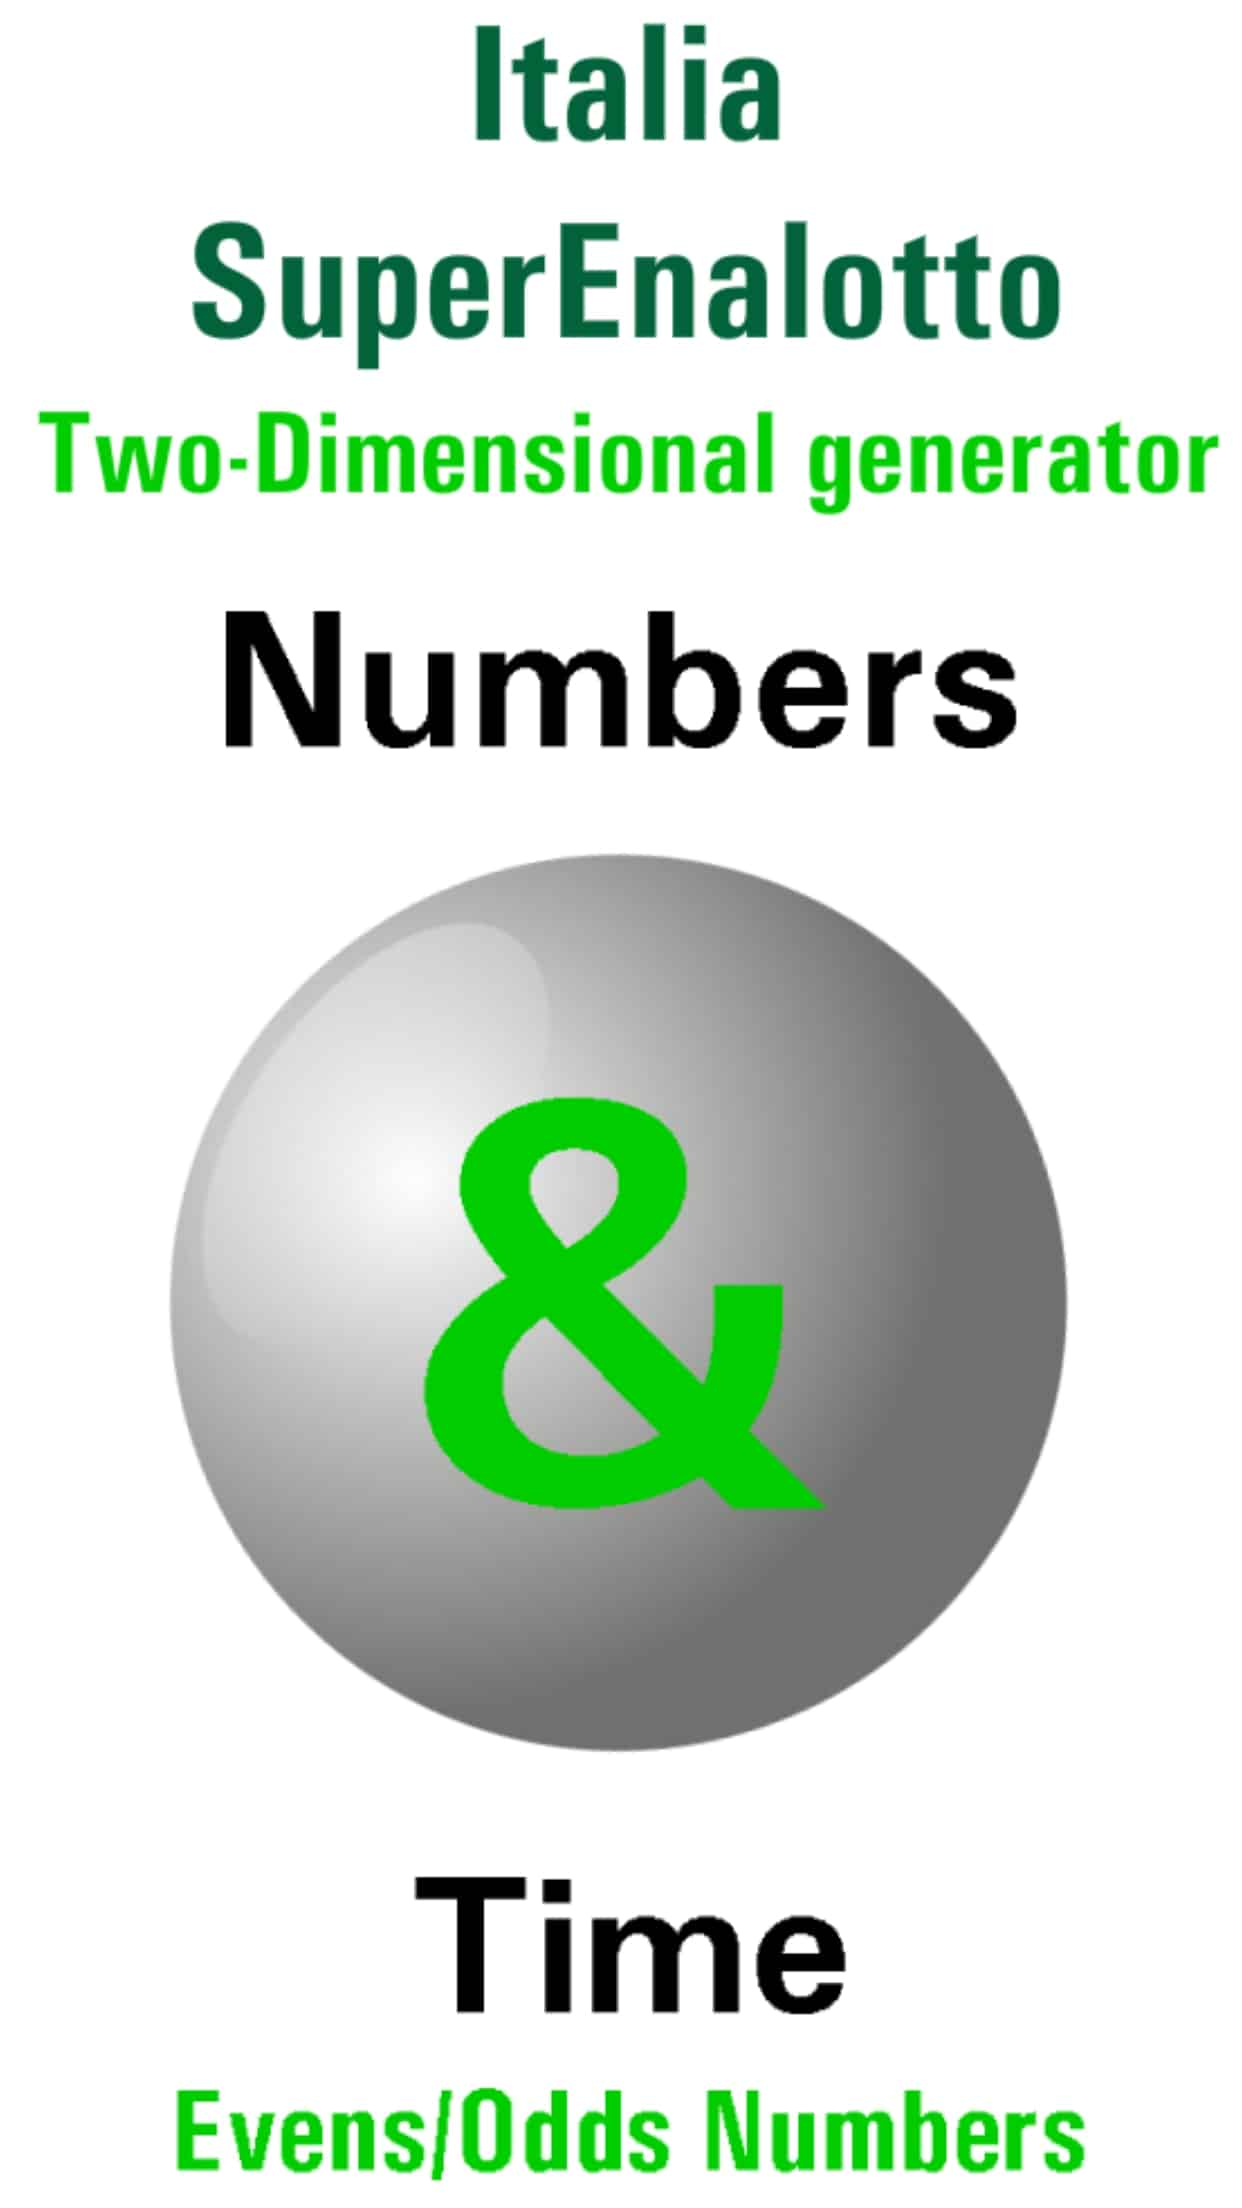 SuperEnaLotto | Italian Lotto | Results, Tips & Winning Numbers